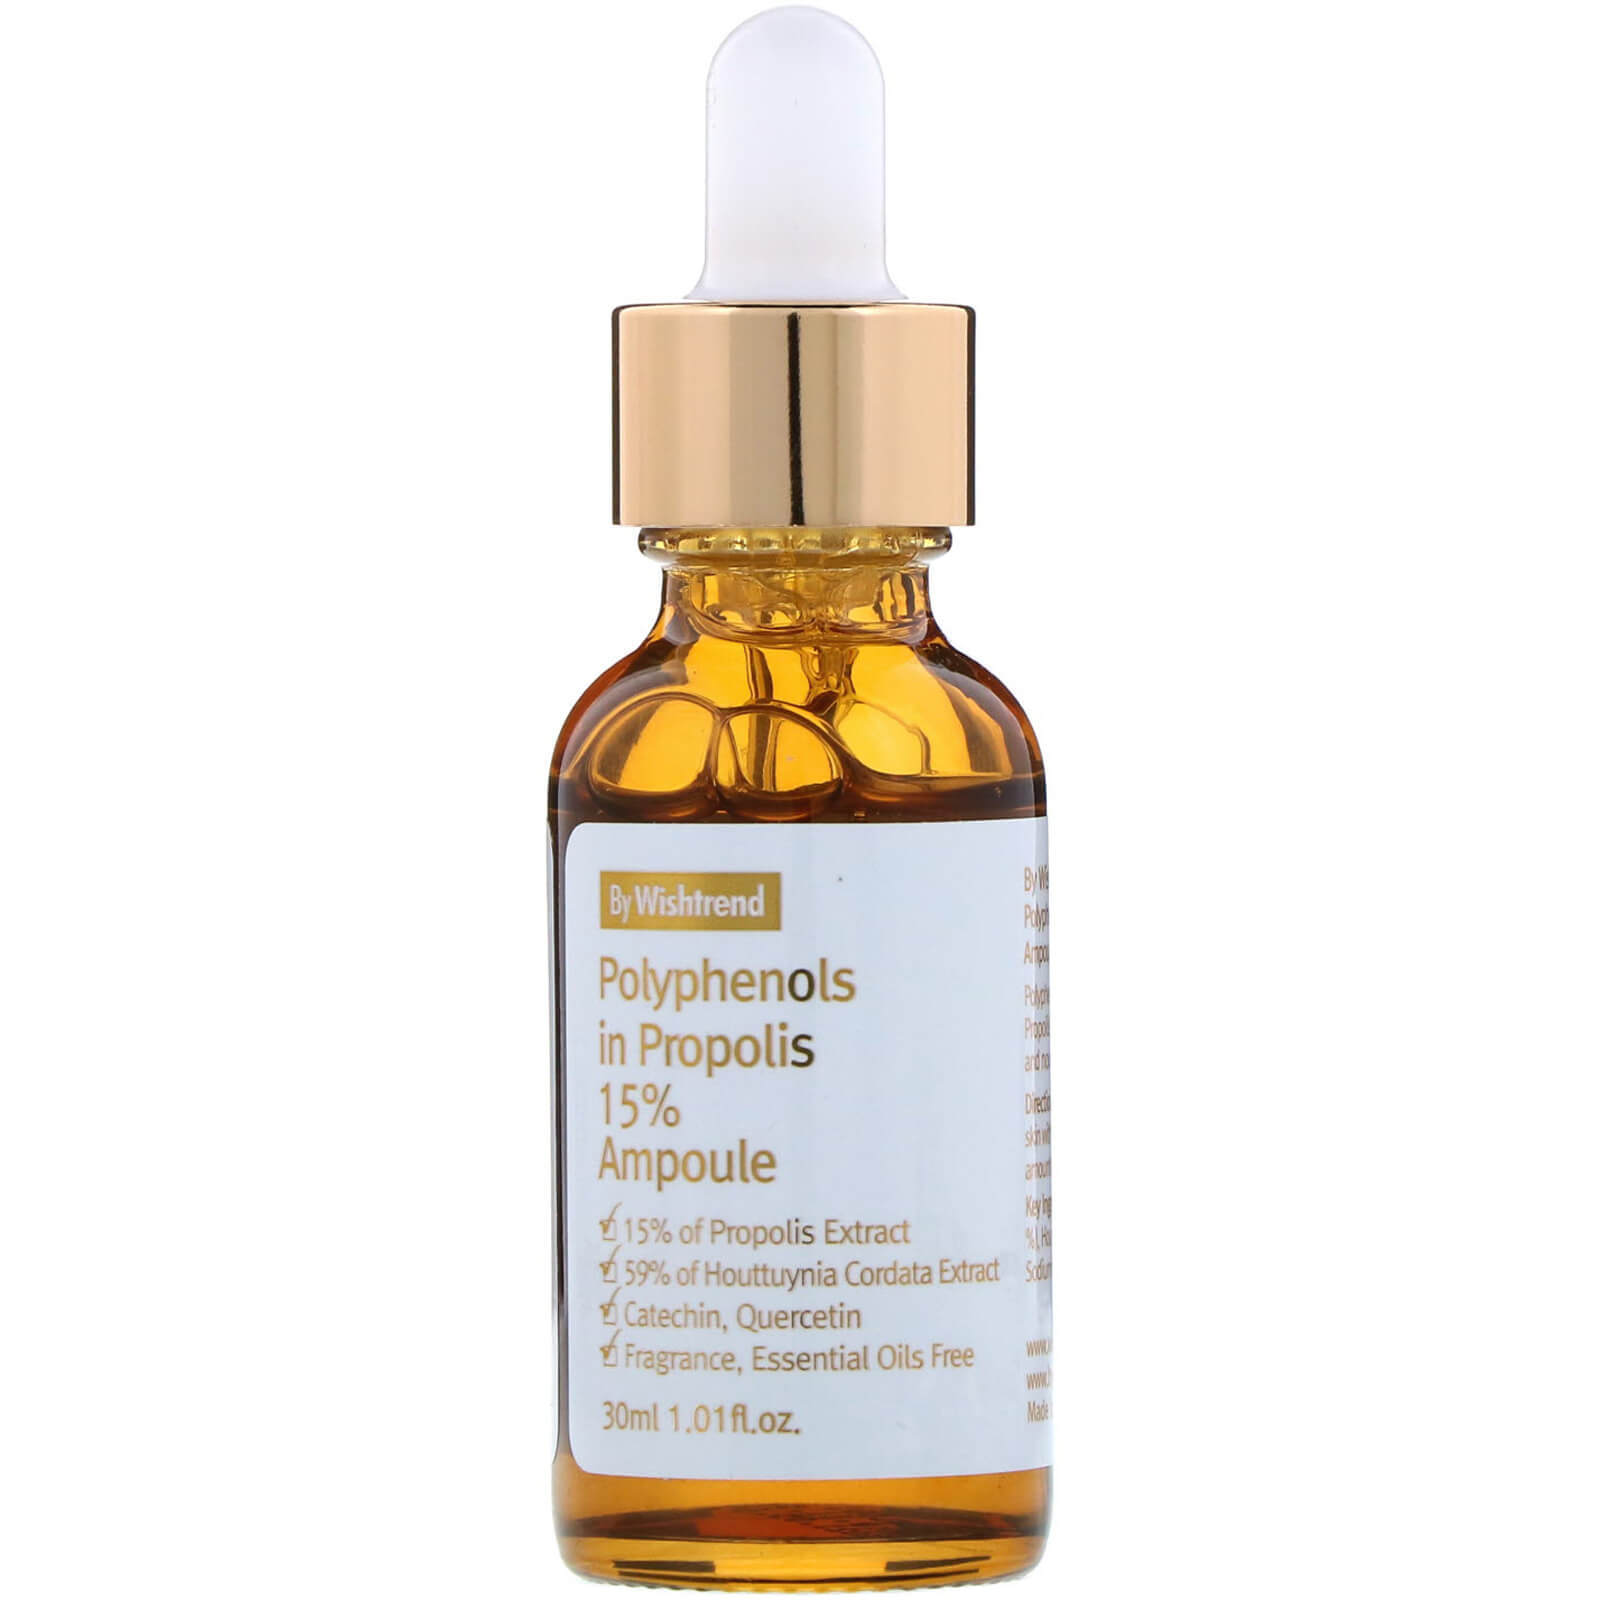 Сыворотка By Wishtrend Polyphenols in Propolis 15% Ampoule 30 мл